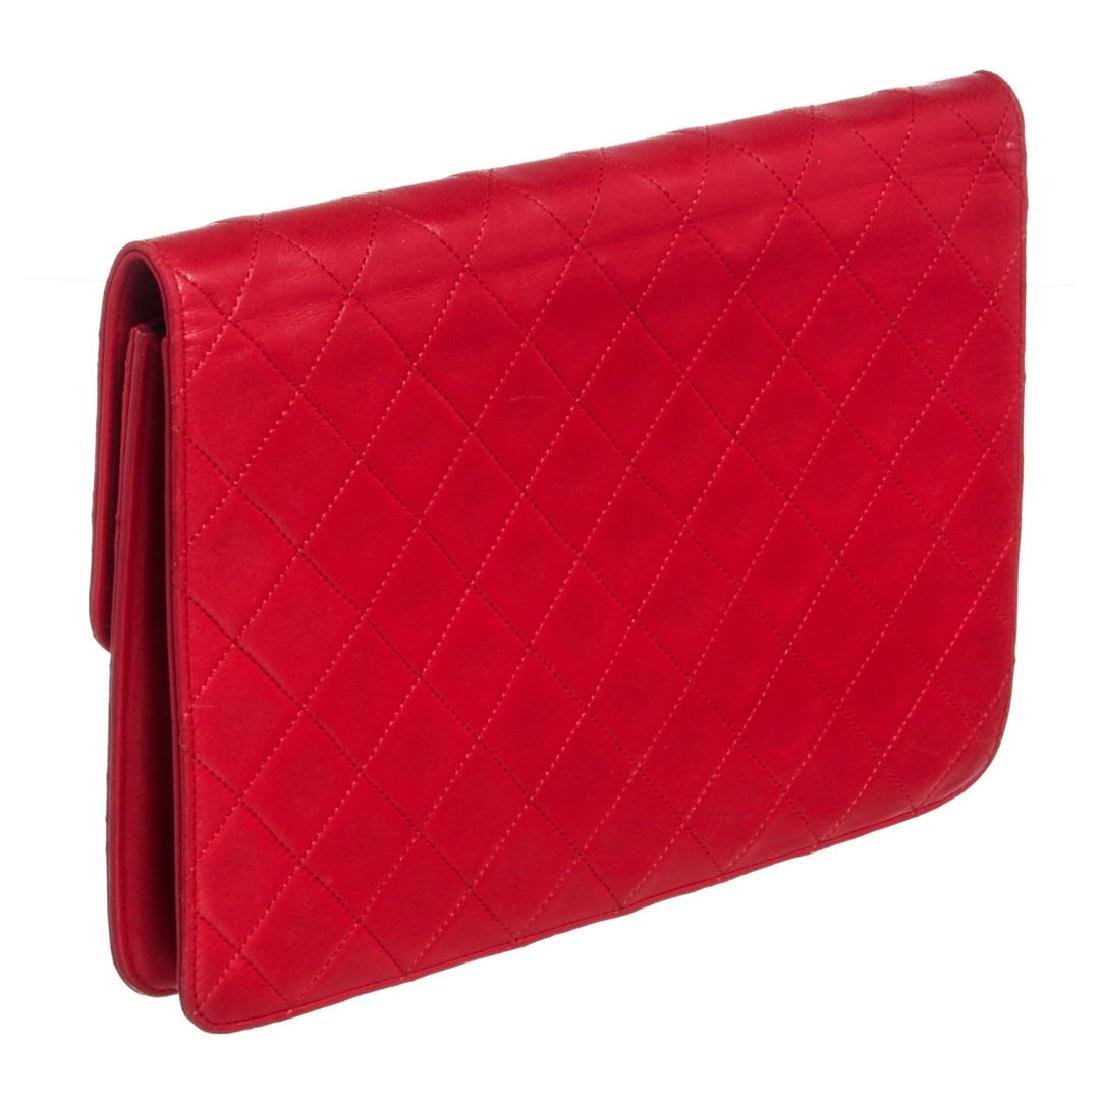 Chanel Red Quilted Lambskin Leather Flap Shoulder - 3